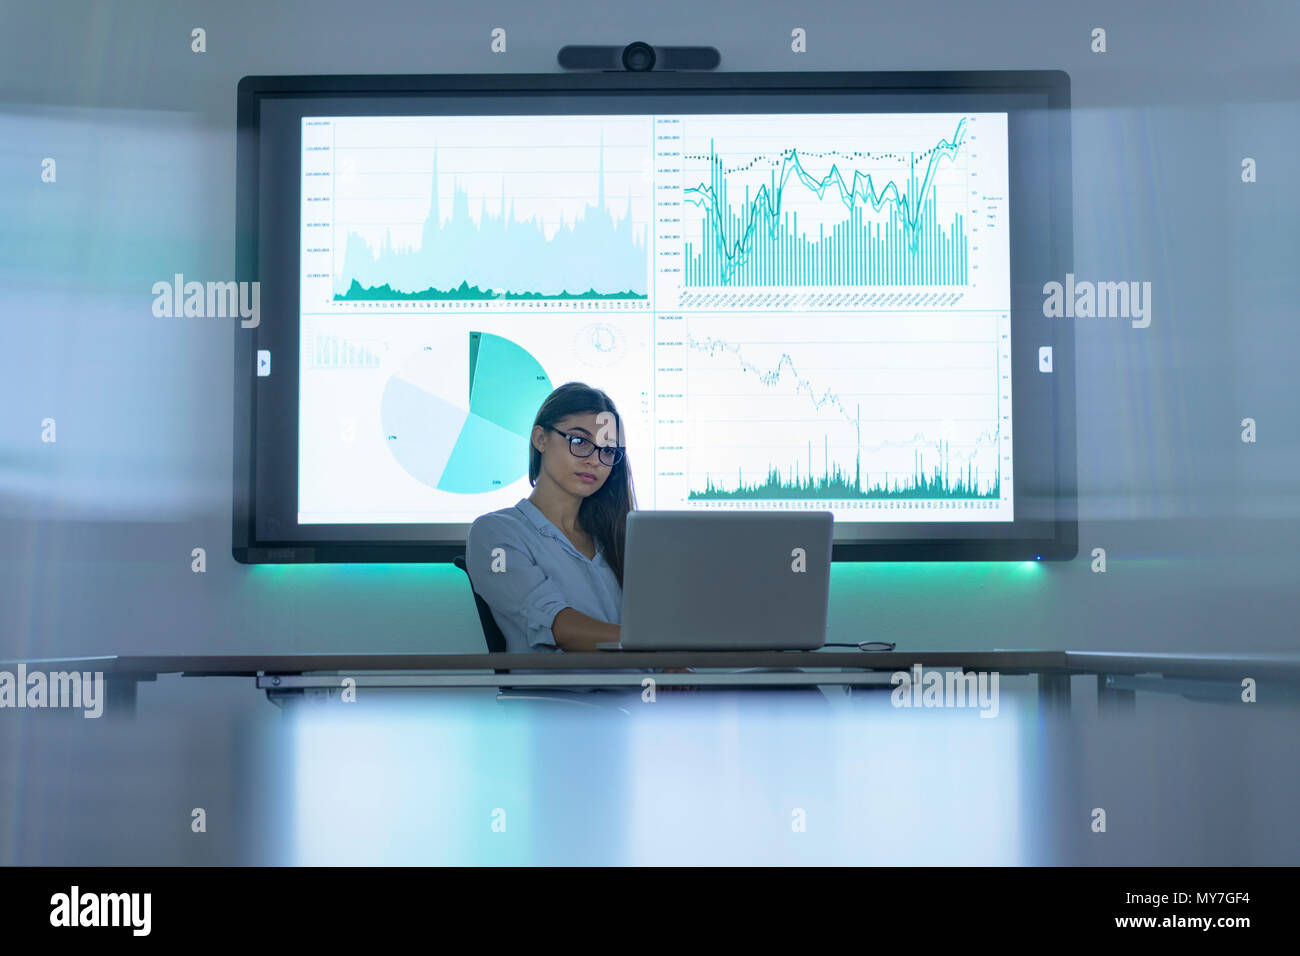 Businesswoman using laptop and interactive screens with charts and graphs in business meeting - Stock Image